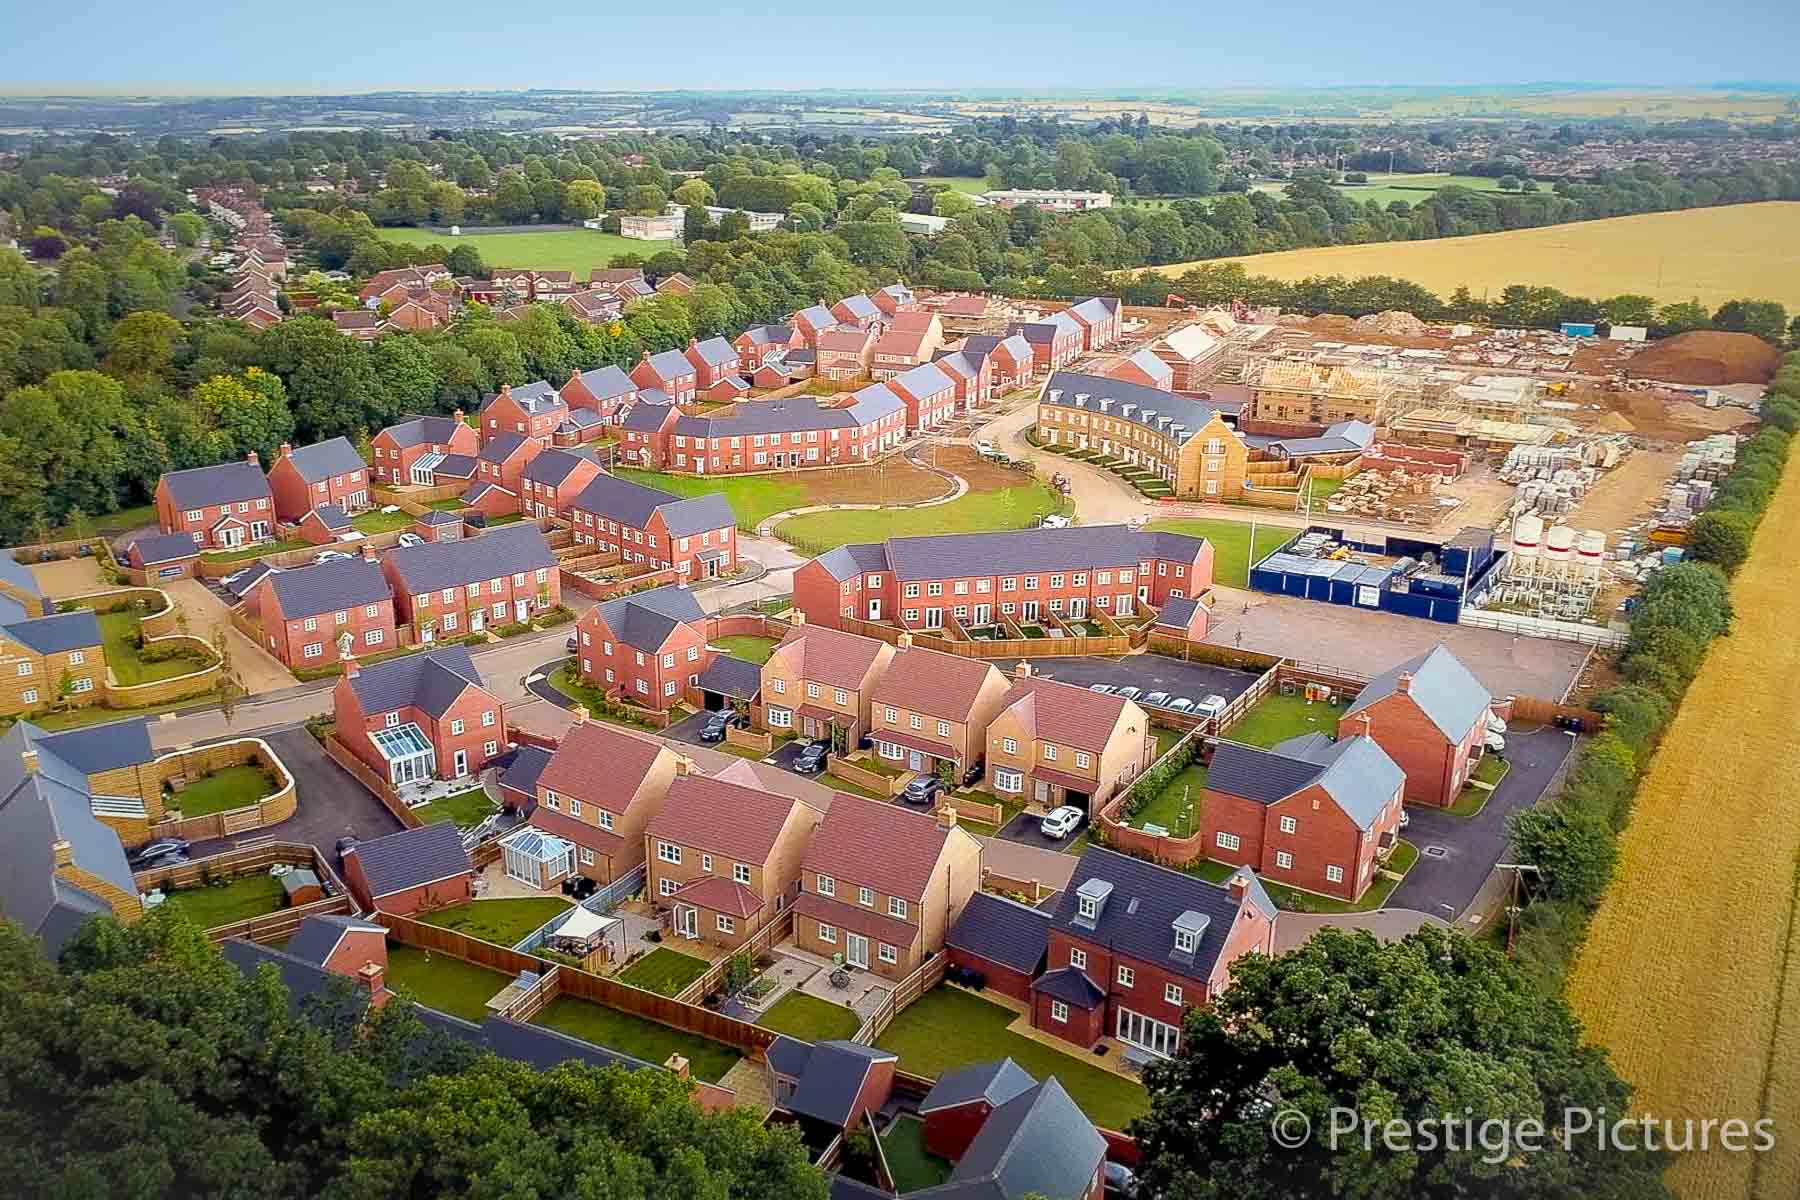 Aerial view of housing estate in north Oxfordshire